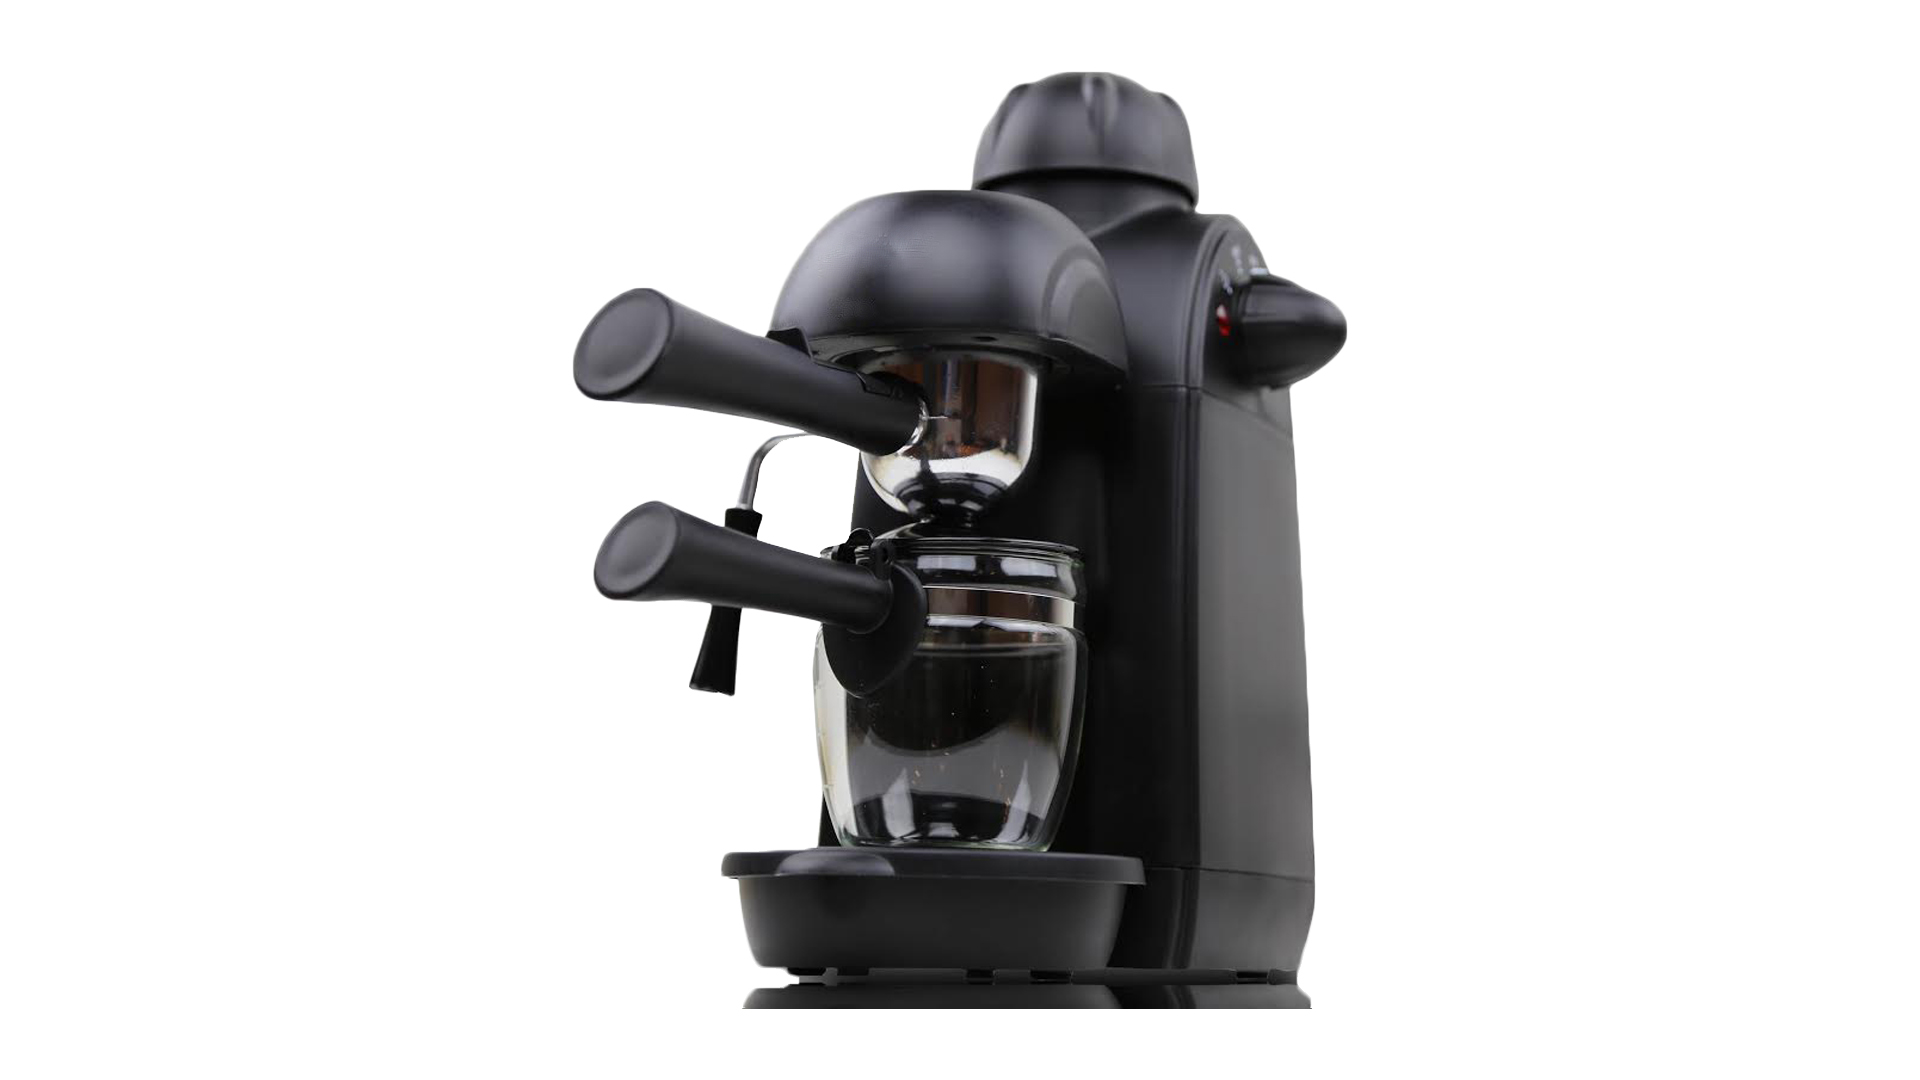 non pump - steam espresso coffee maker